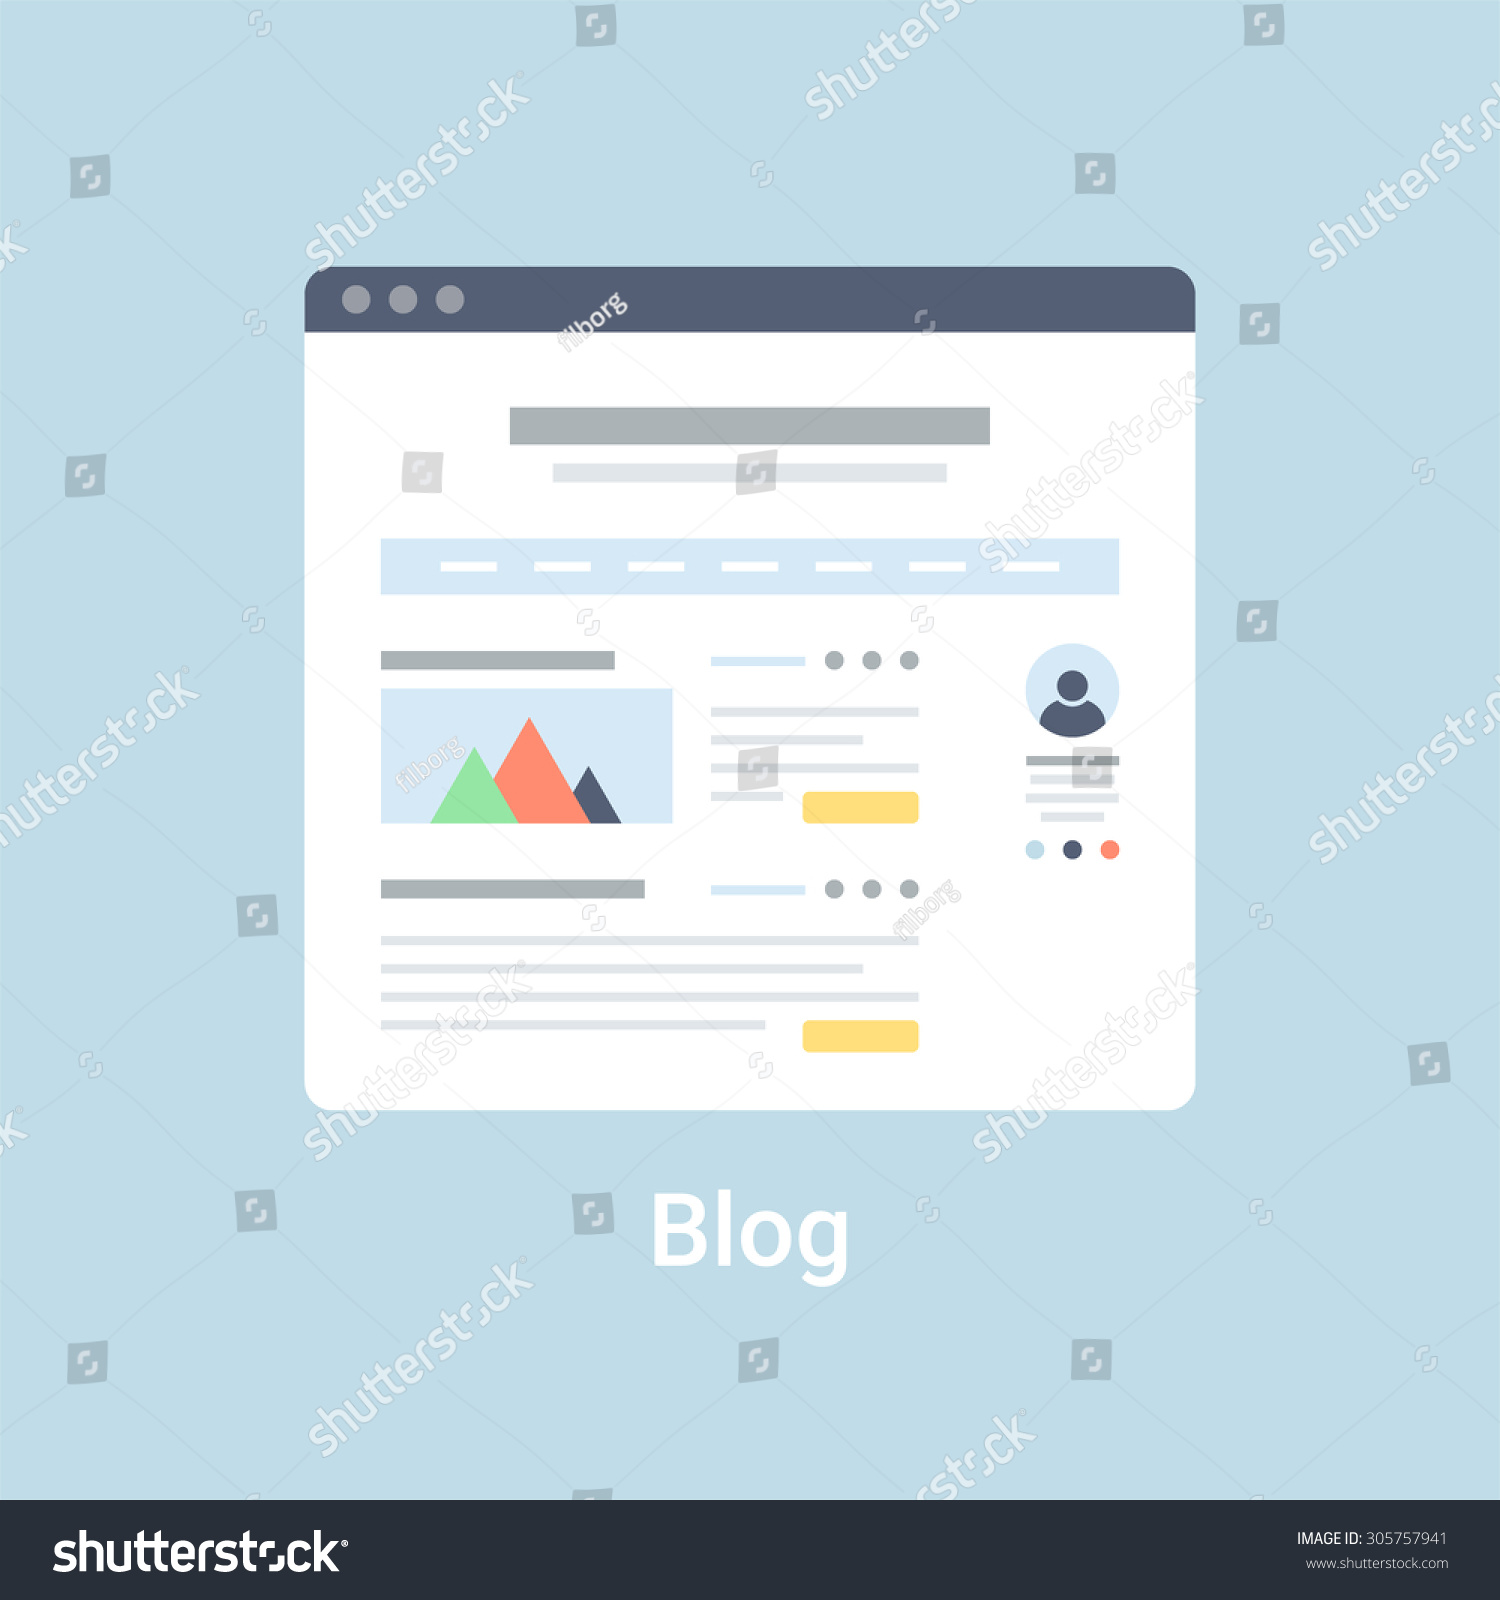 Template interface interface control document download ms word blog website wireframe interface template flat stock vector pronofoot35fo Image collections